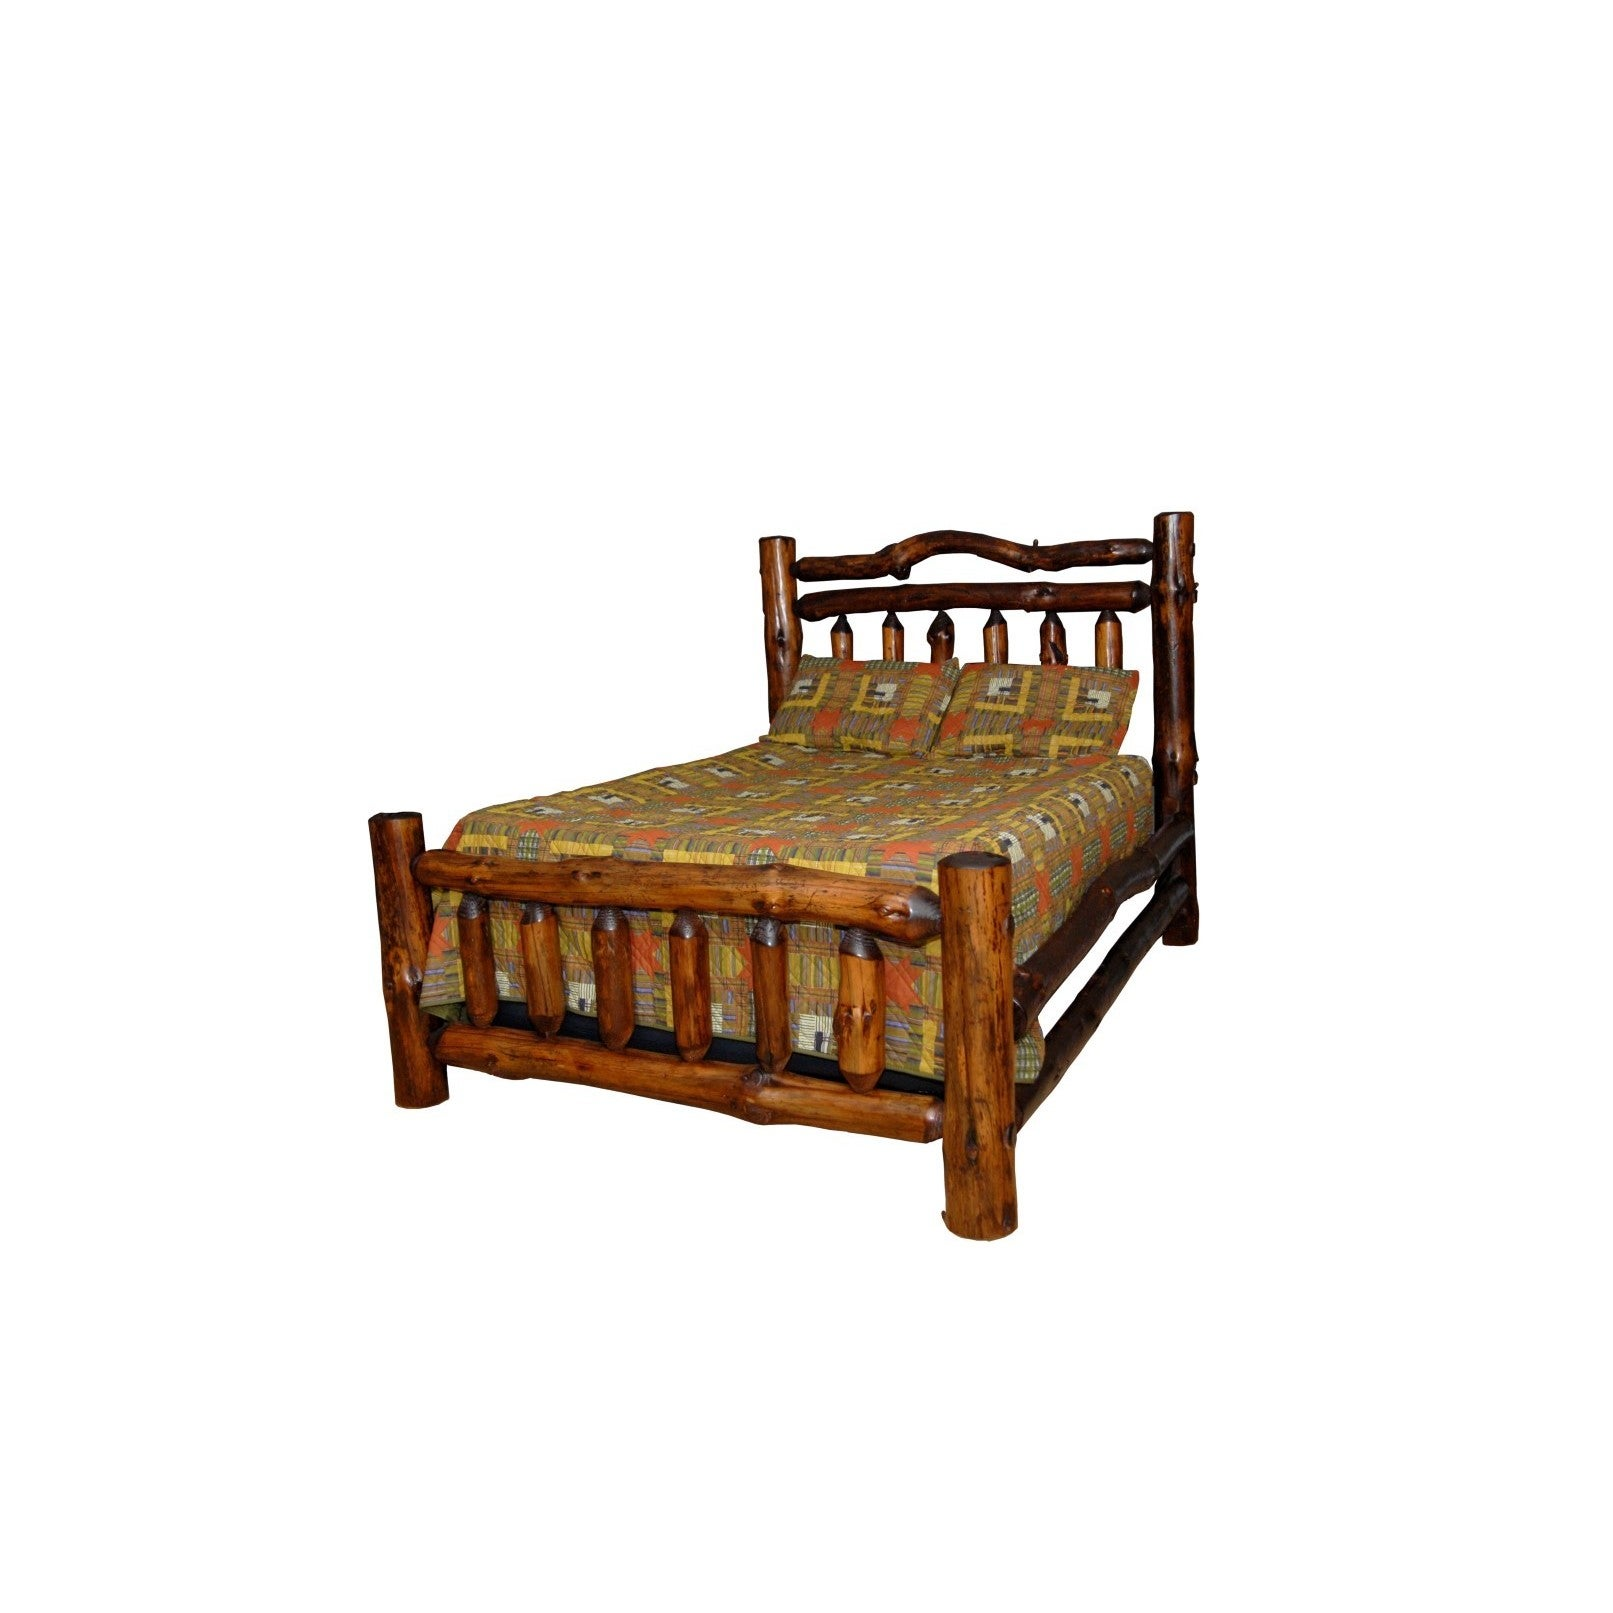 Rustic Pine Log Double Top Rail Bed - Michael\'s Cherry Stain